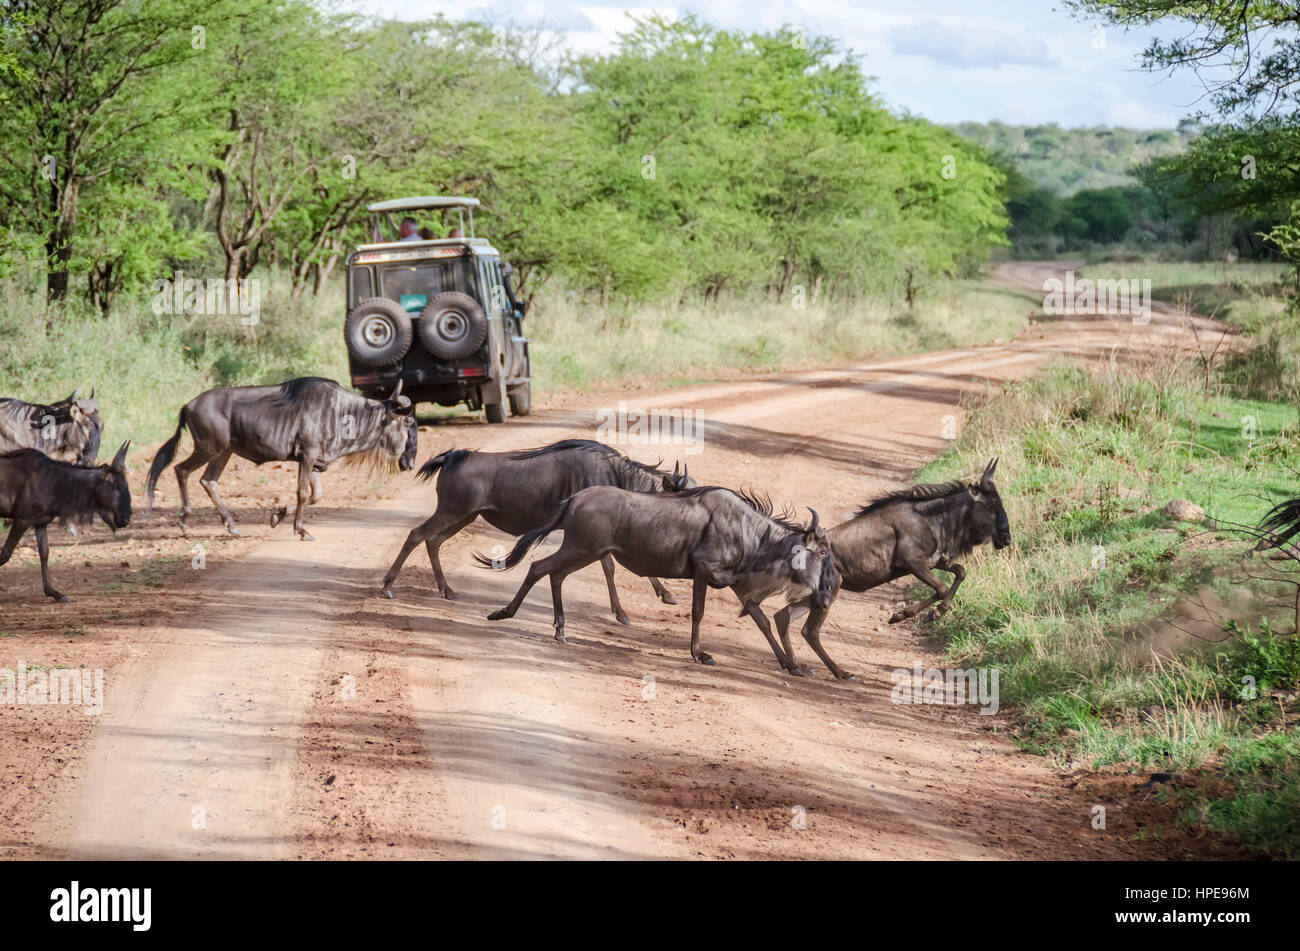 Wildebeests traversing the road in Serengeti, Tanzania - Stock Image